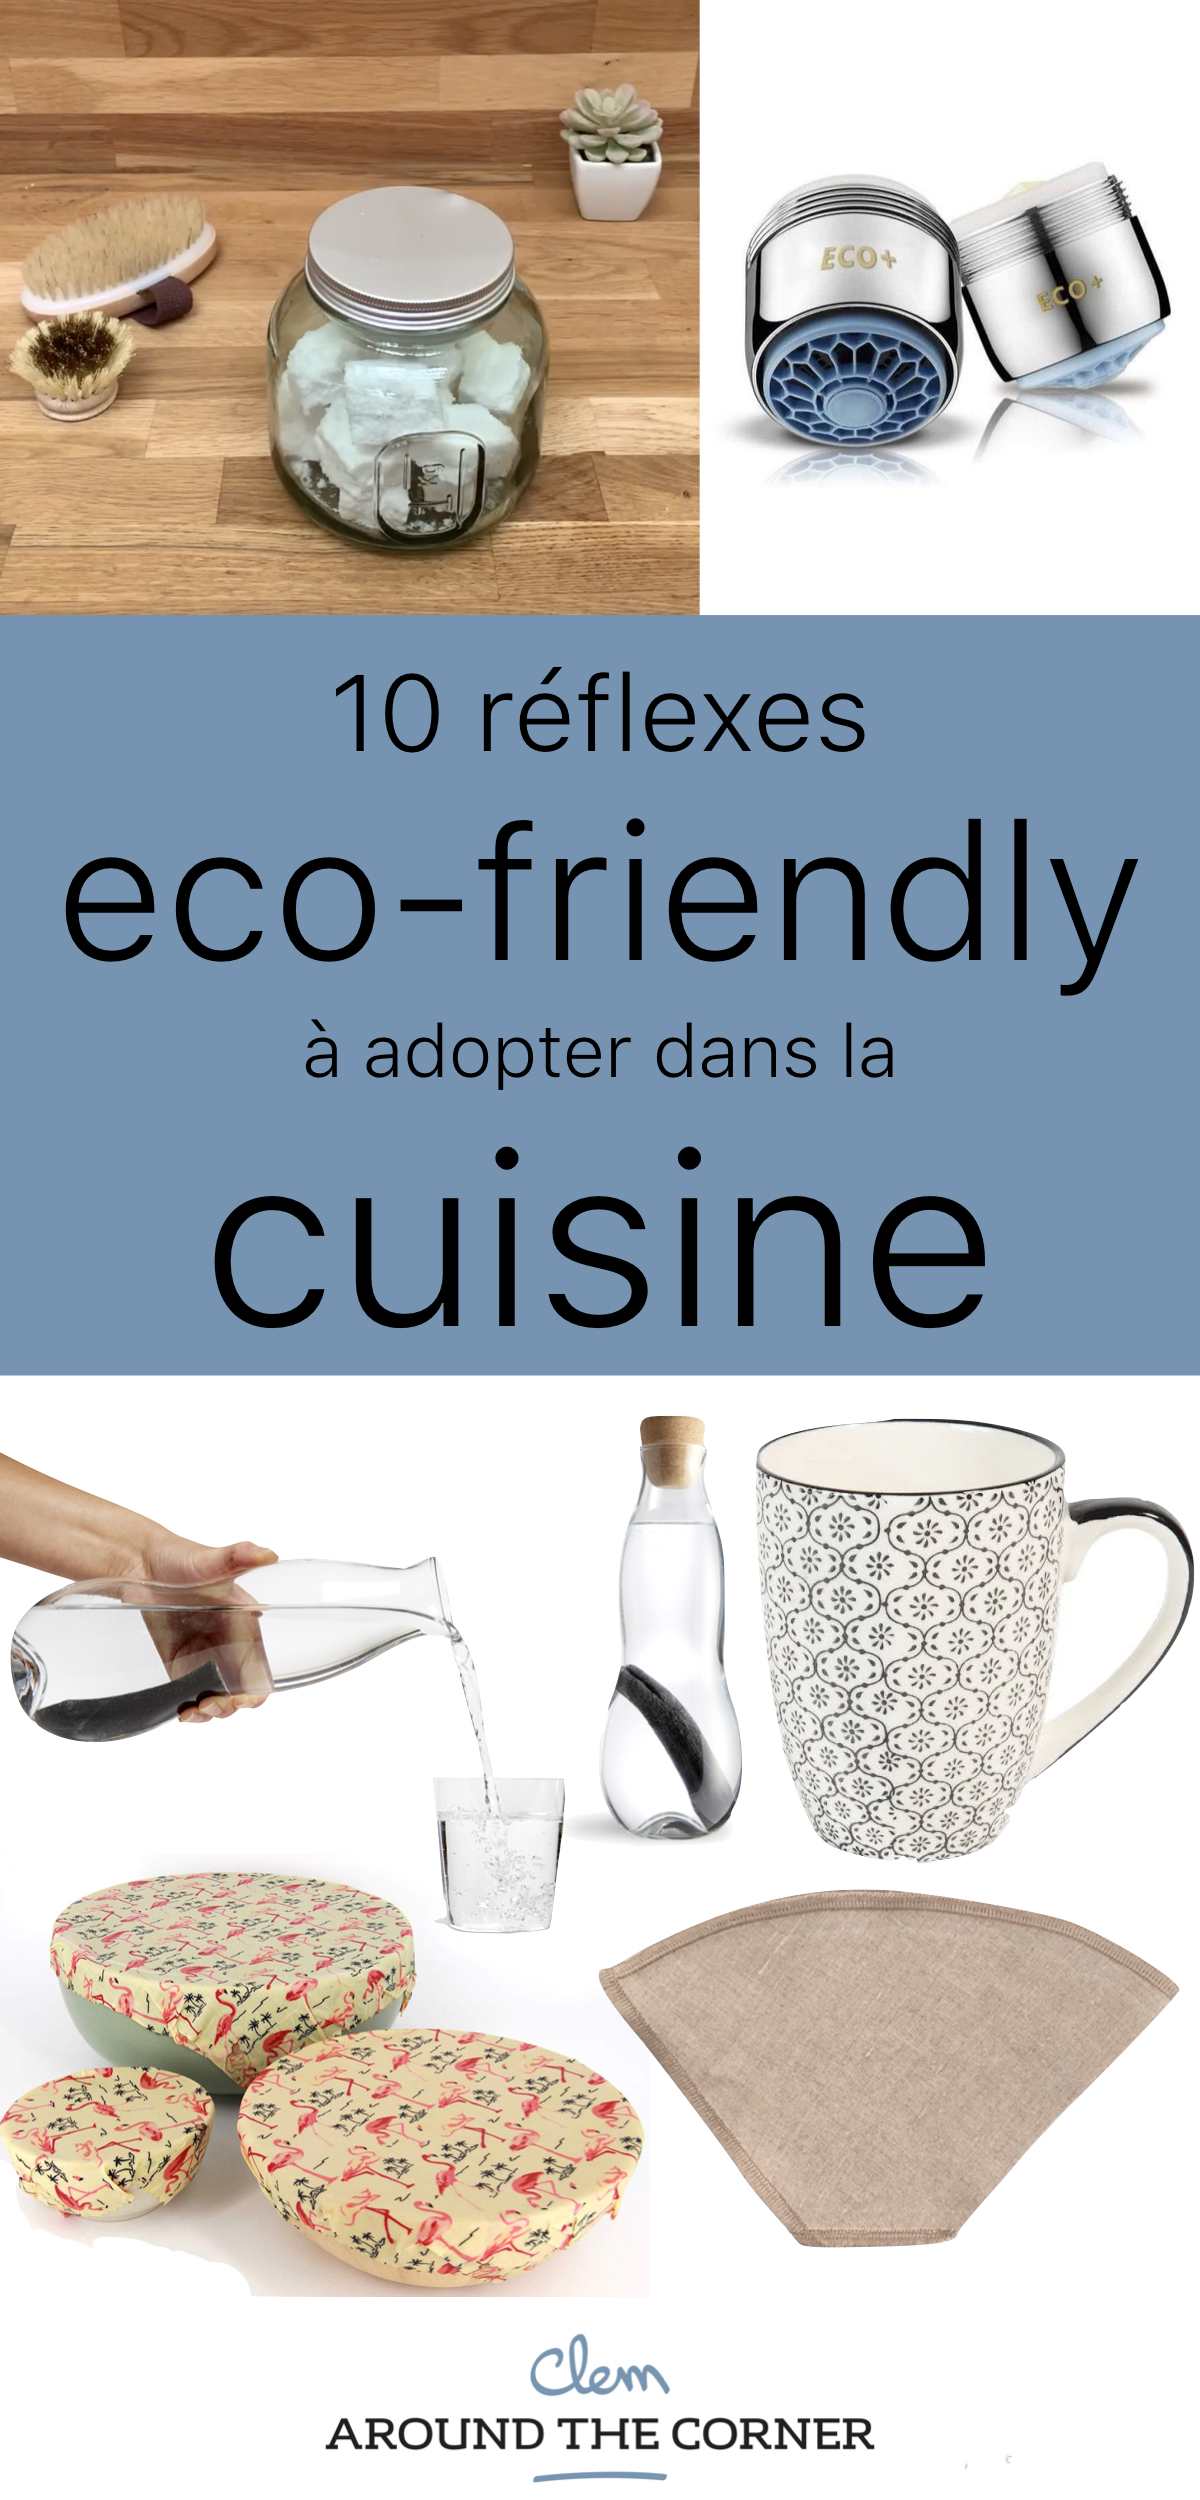 gestes éco-responsables cuisine équipement eco-friendly - blog déco - clem around the corner